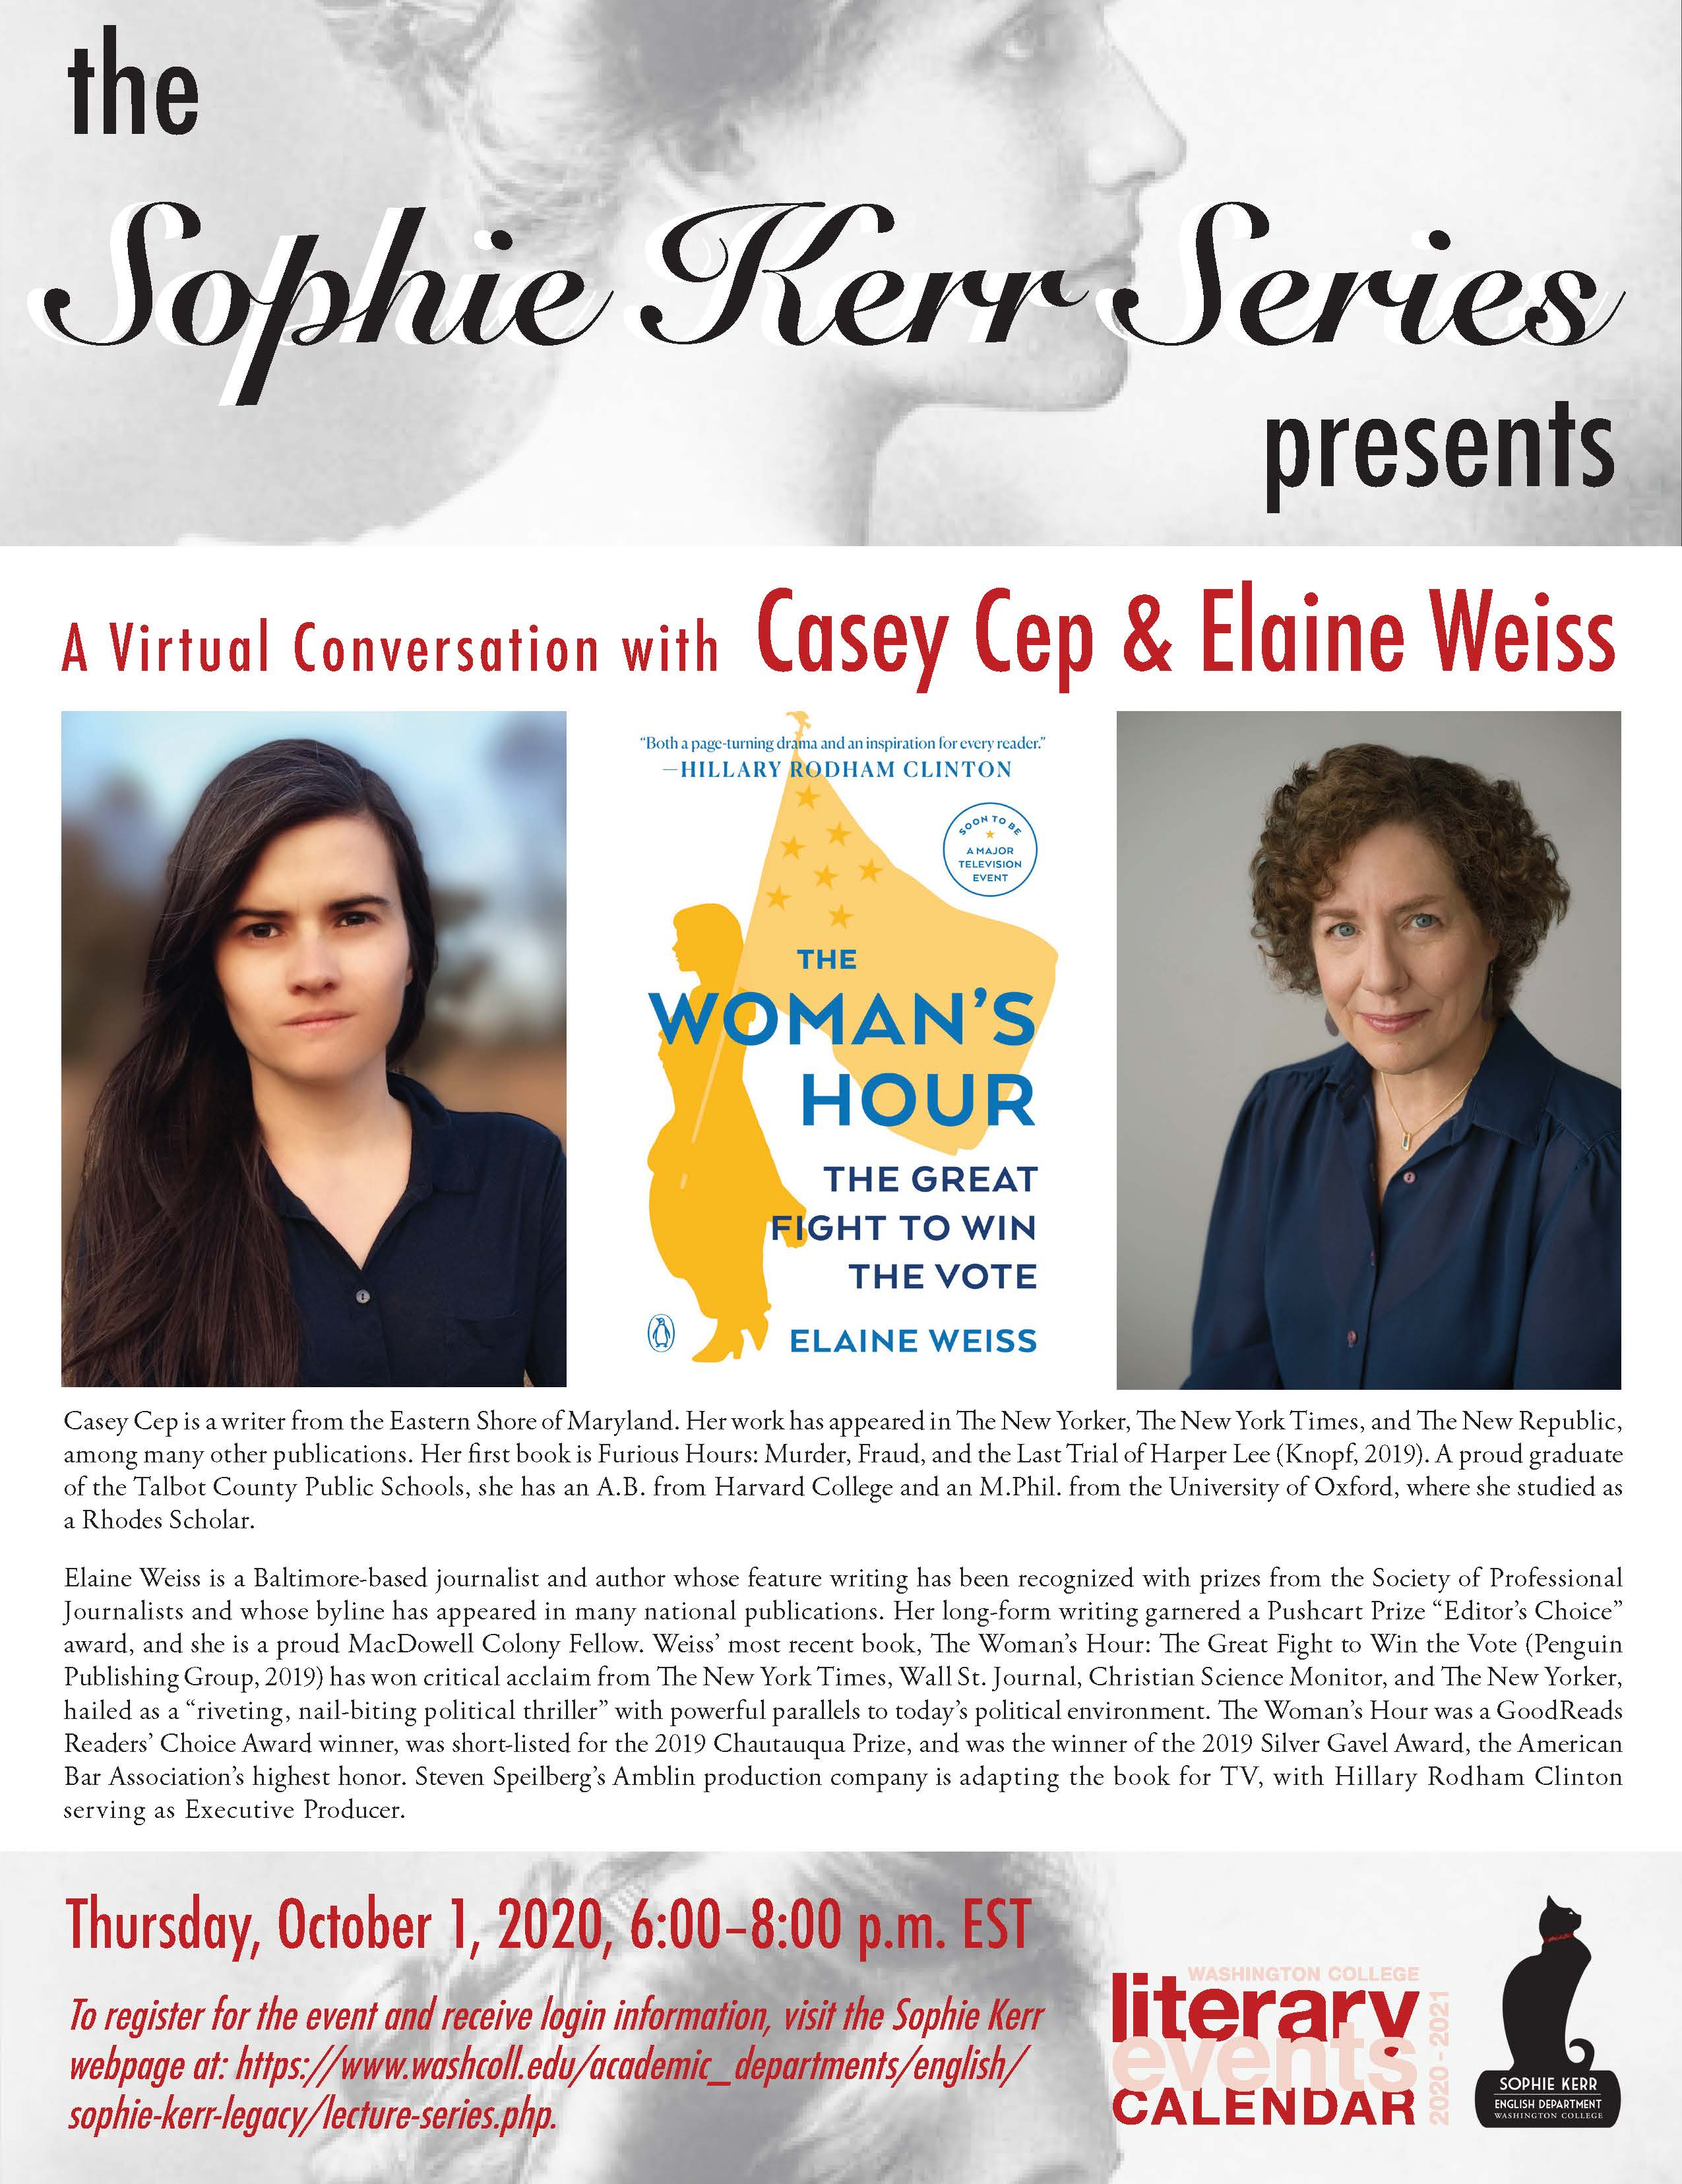 The Sophie Kerr Program Presents: A Conversation with Casey Cep and Elaine Weiss